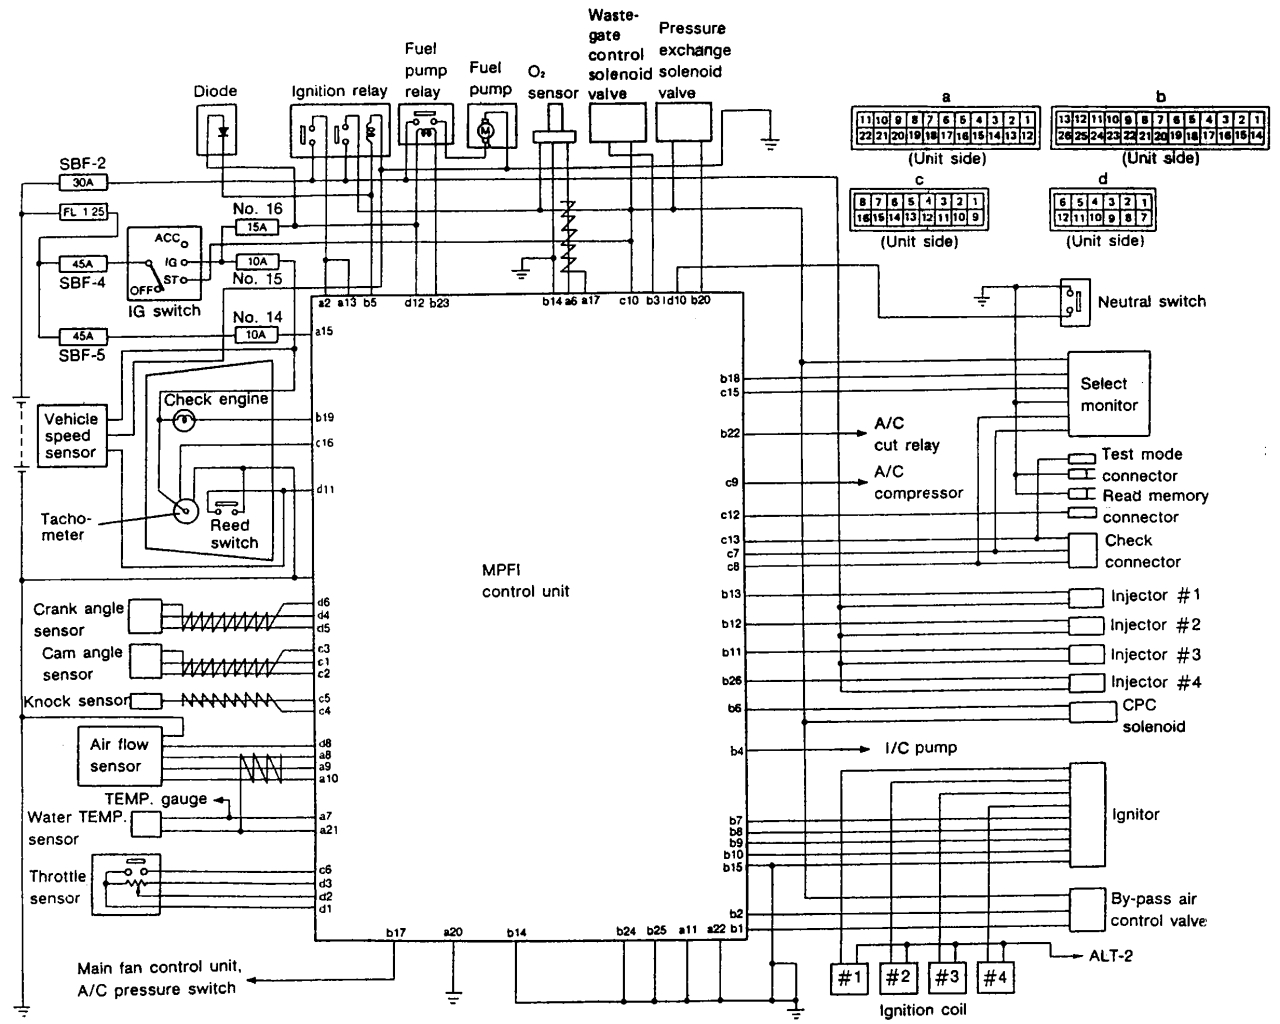 1996 Subaru Impreza Headlight Wiring Diagram Data Wiring Diagrams \u2022  1993 Buick Park Avenue Fuse Box Diagram 1993 Subaru Legacy Fuse Box Diagram